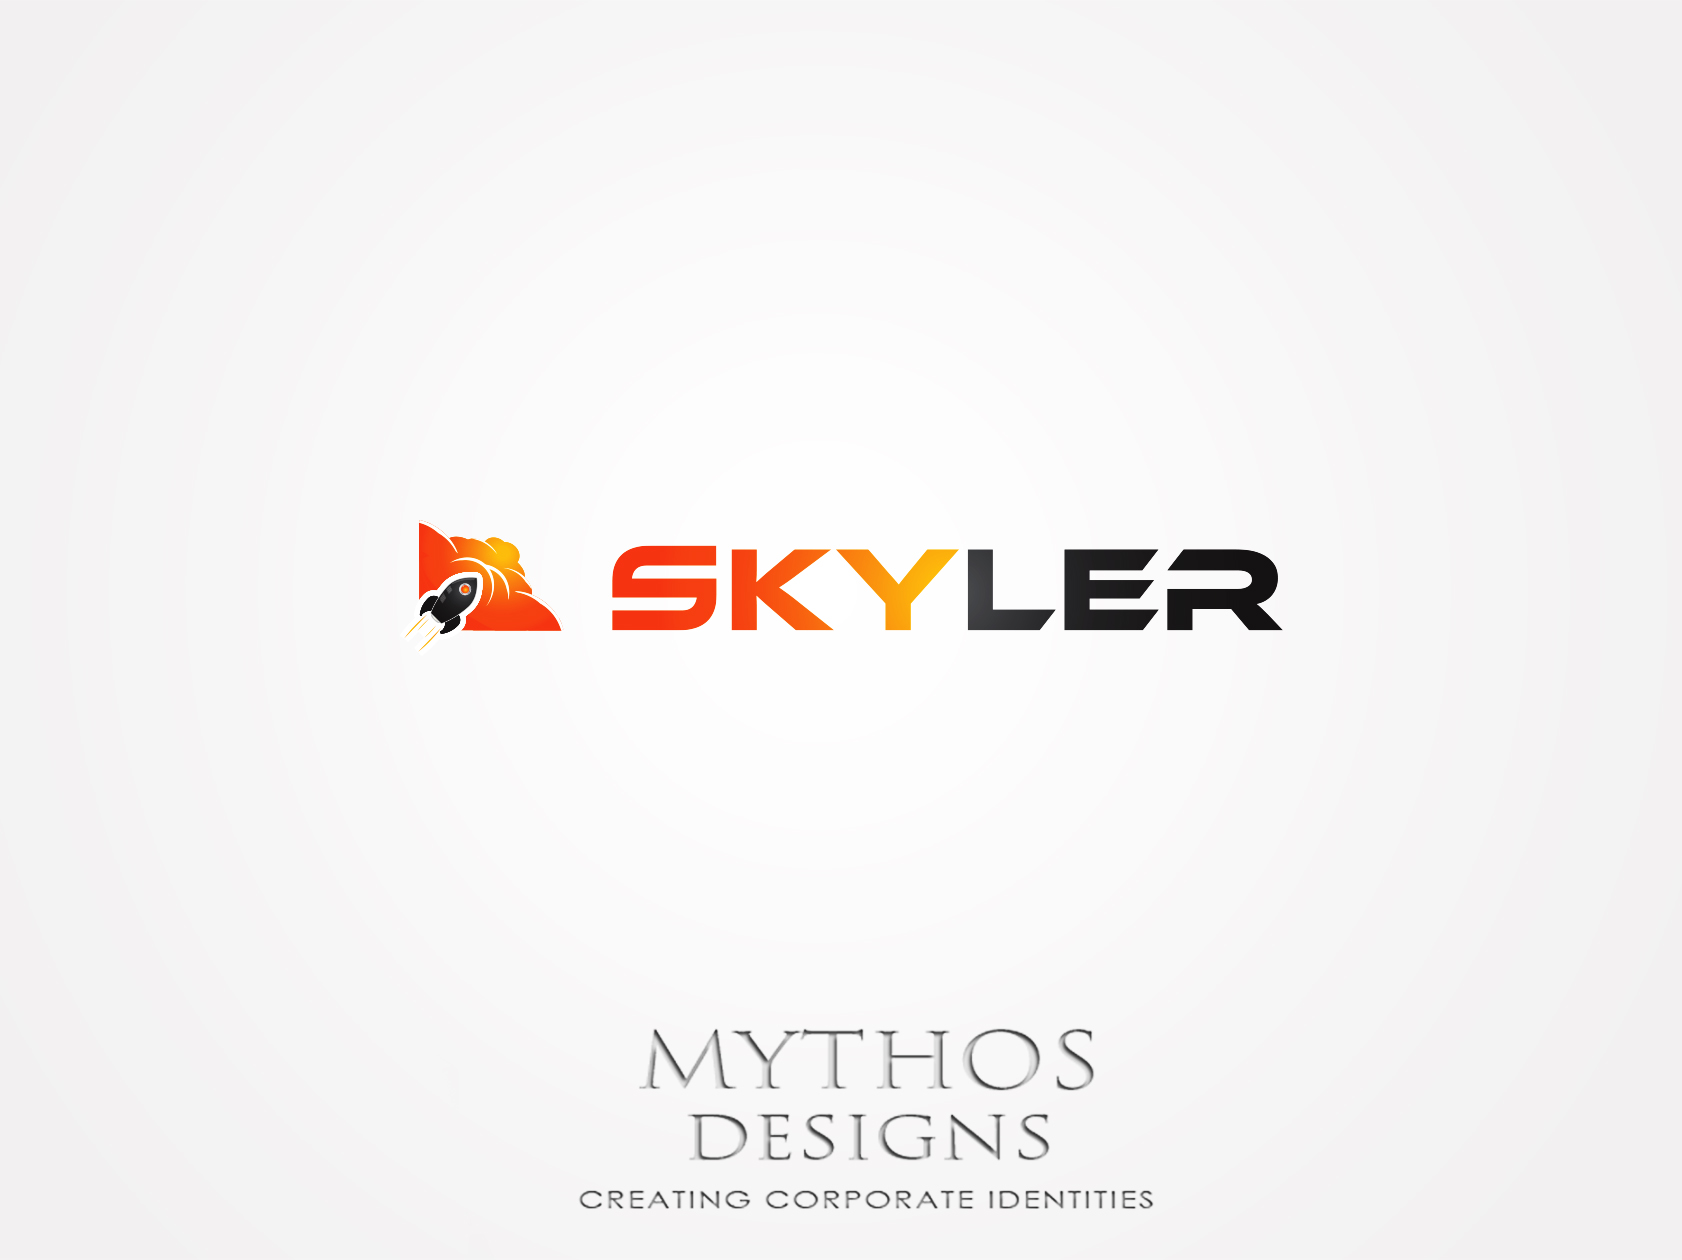 Logo Design by Mythos Designs - Entry No. 101 in the Logo Design Contest Artistic Logo Design for Skyler.Asia.